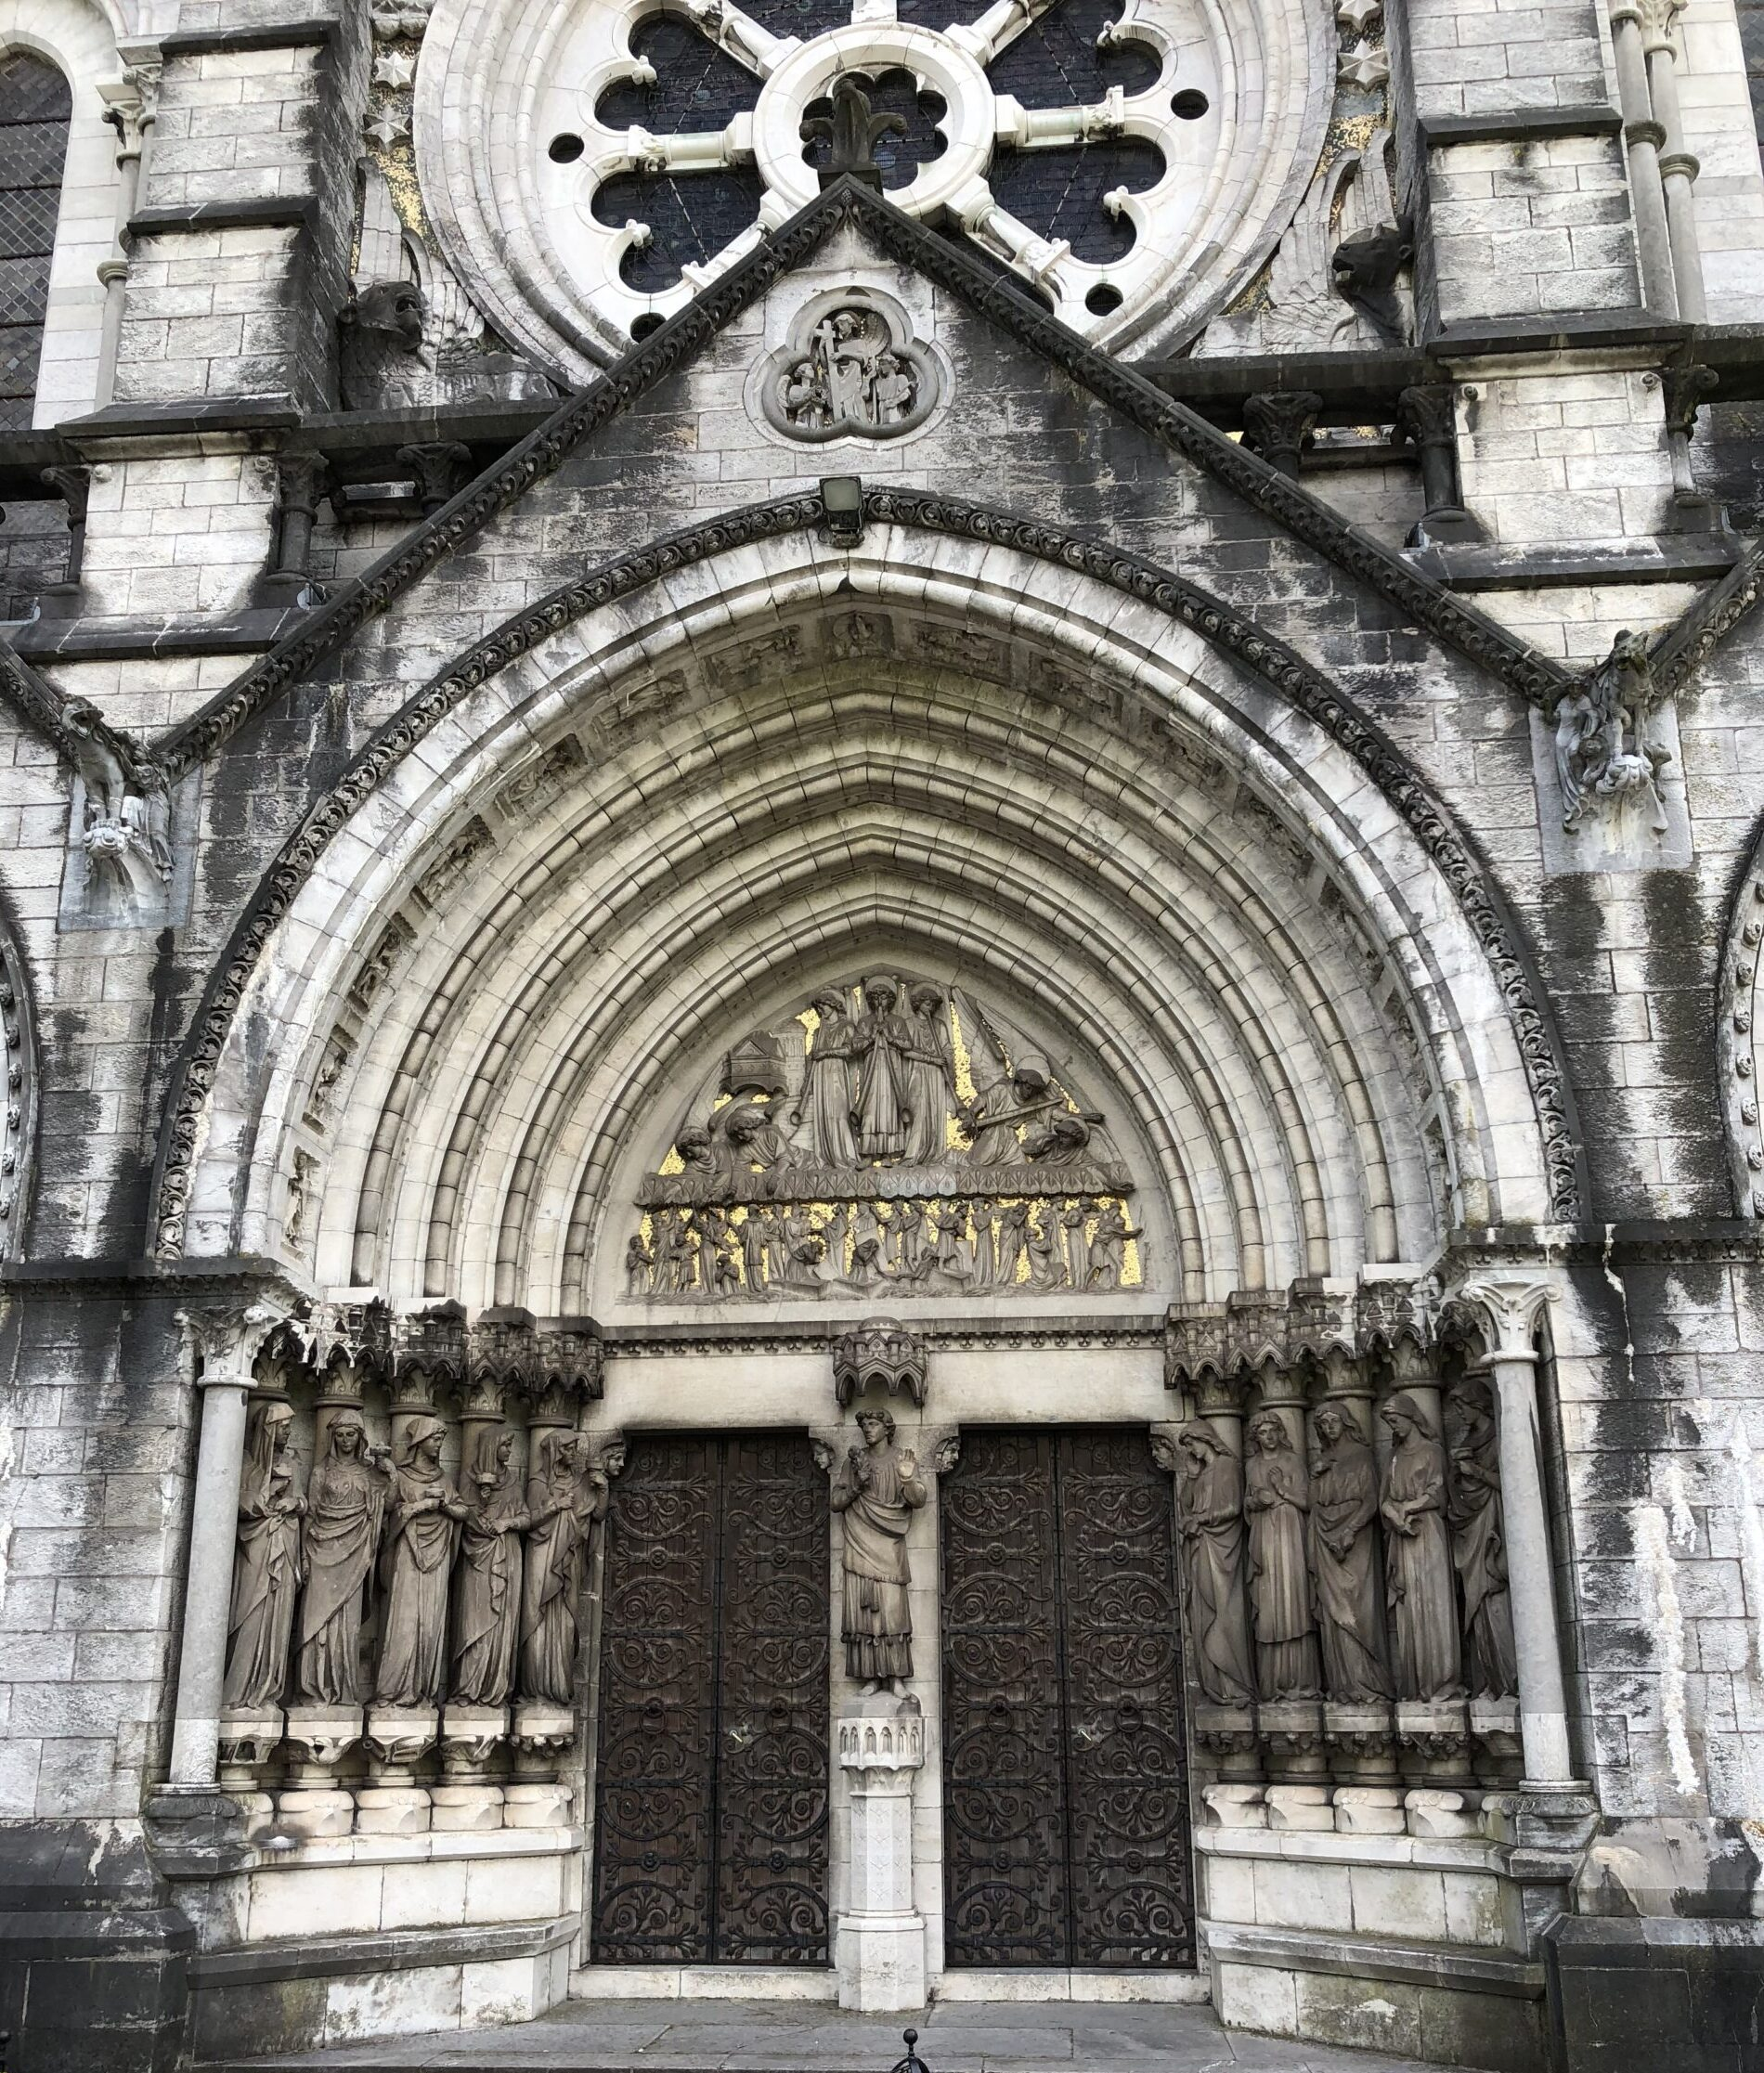 Tympanum at main entrance to St Fin Barre's Cathedral, Cork